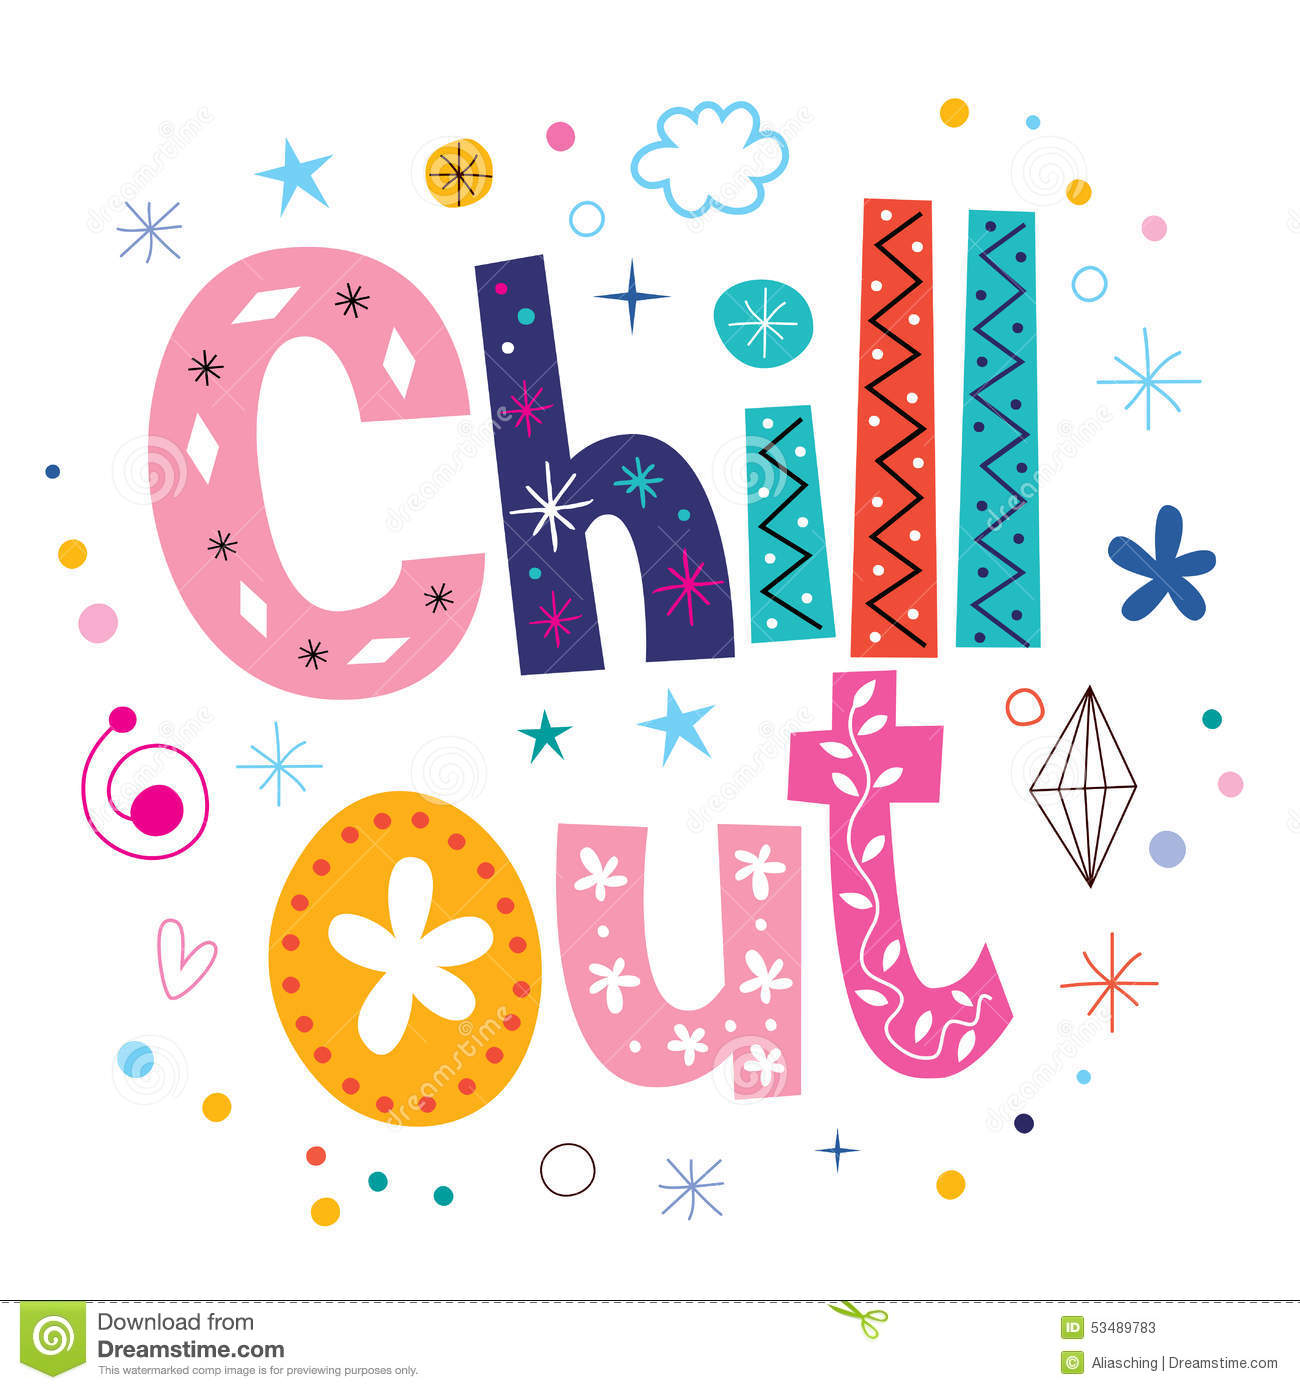 Chill out clipart #13